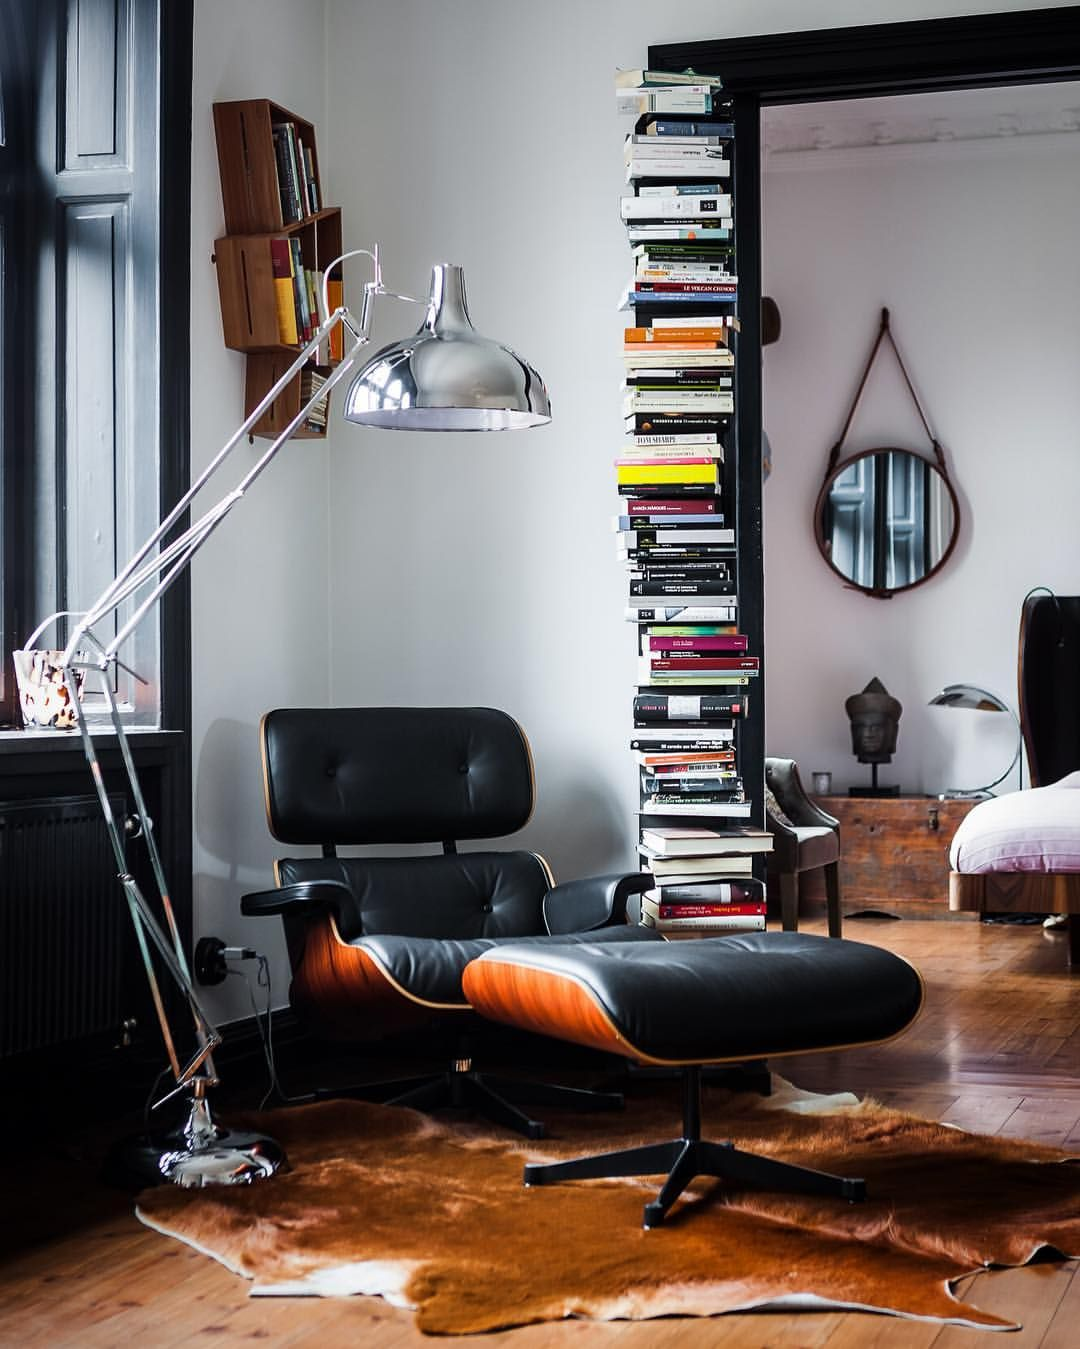 Eames Lounge Chair Living Room see this instagram post@henriknero • 385 likes | eames